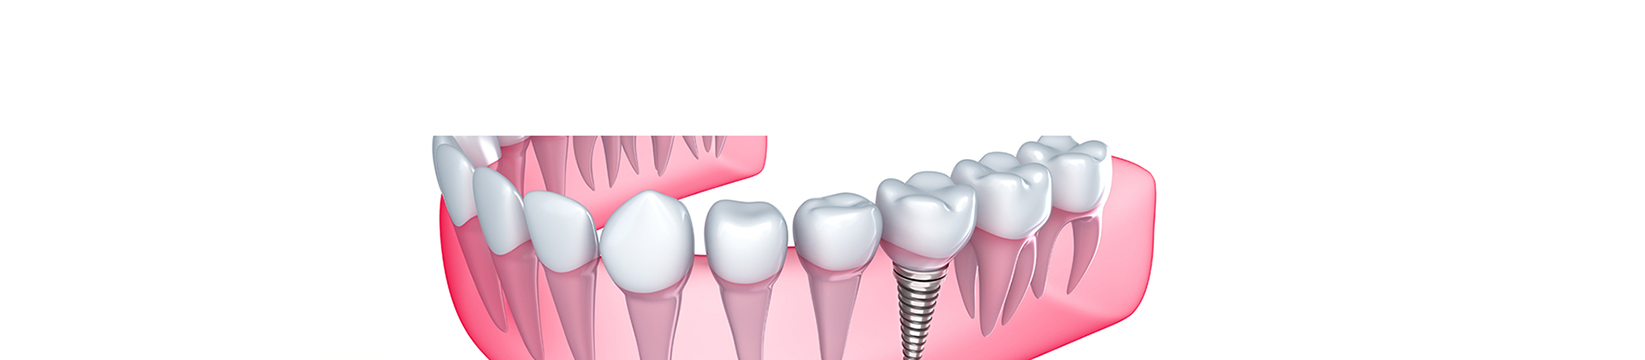 dental implants saint albans